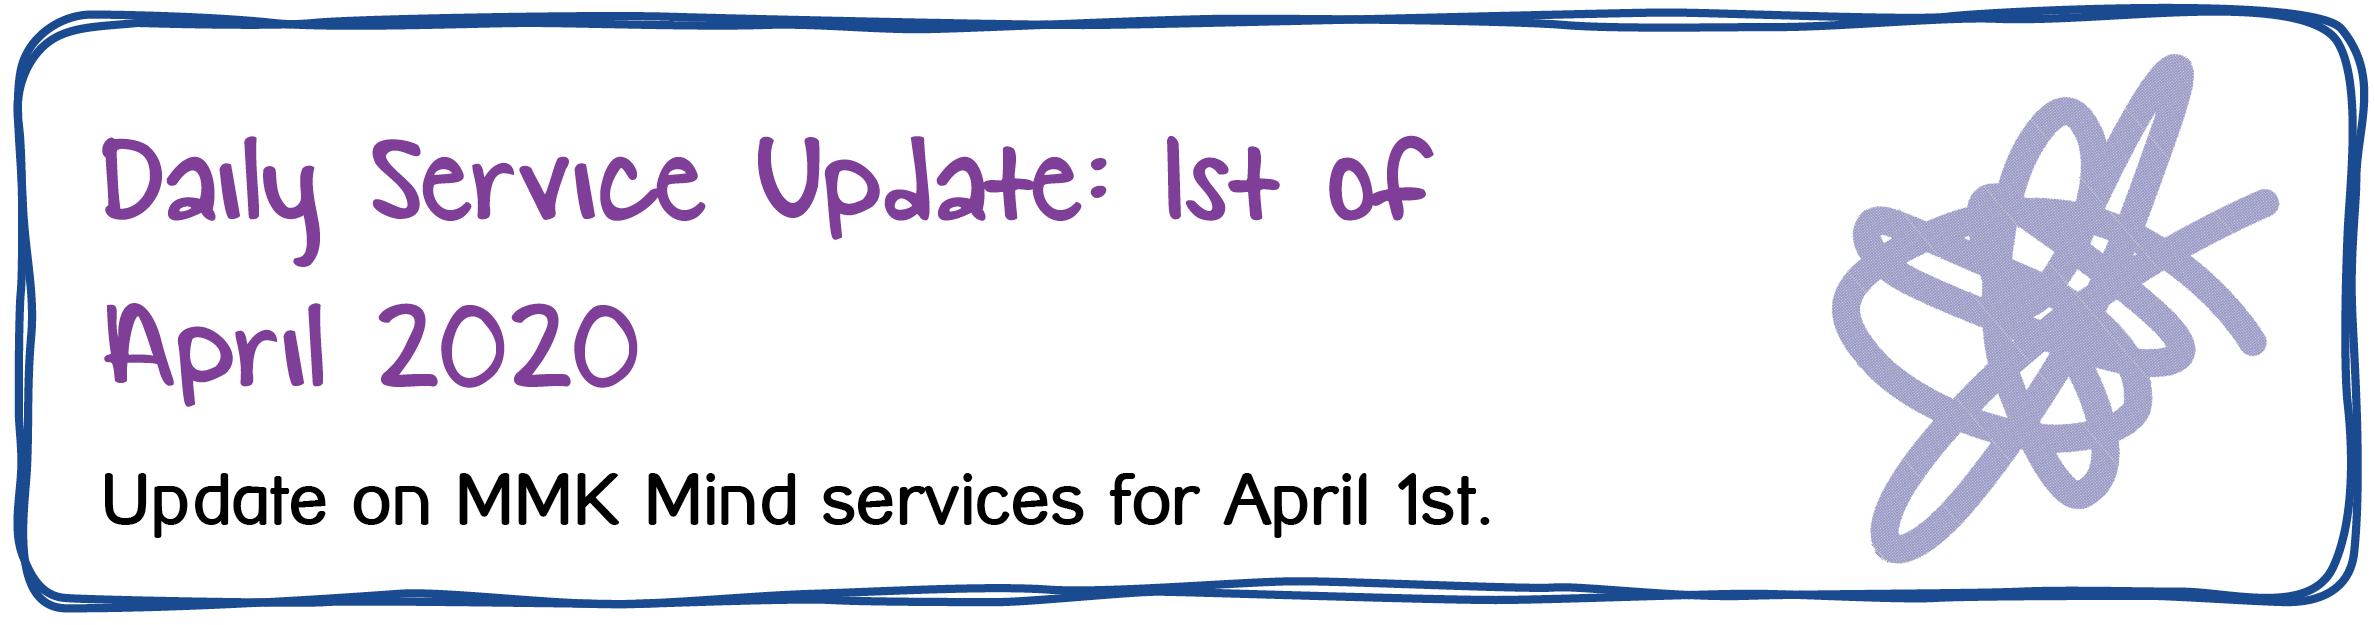 Daily Service Update: 1st of April 2020